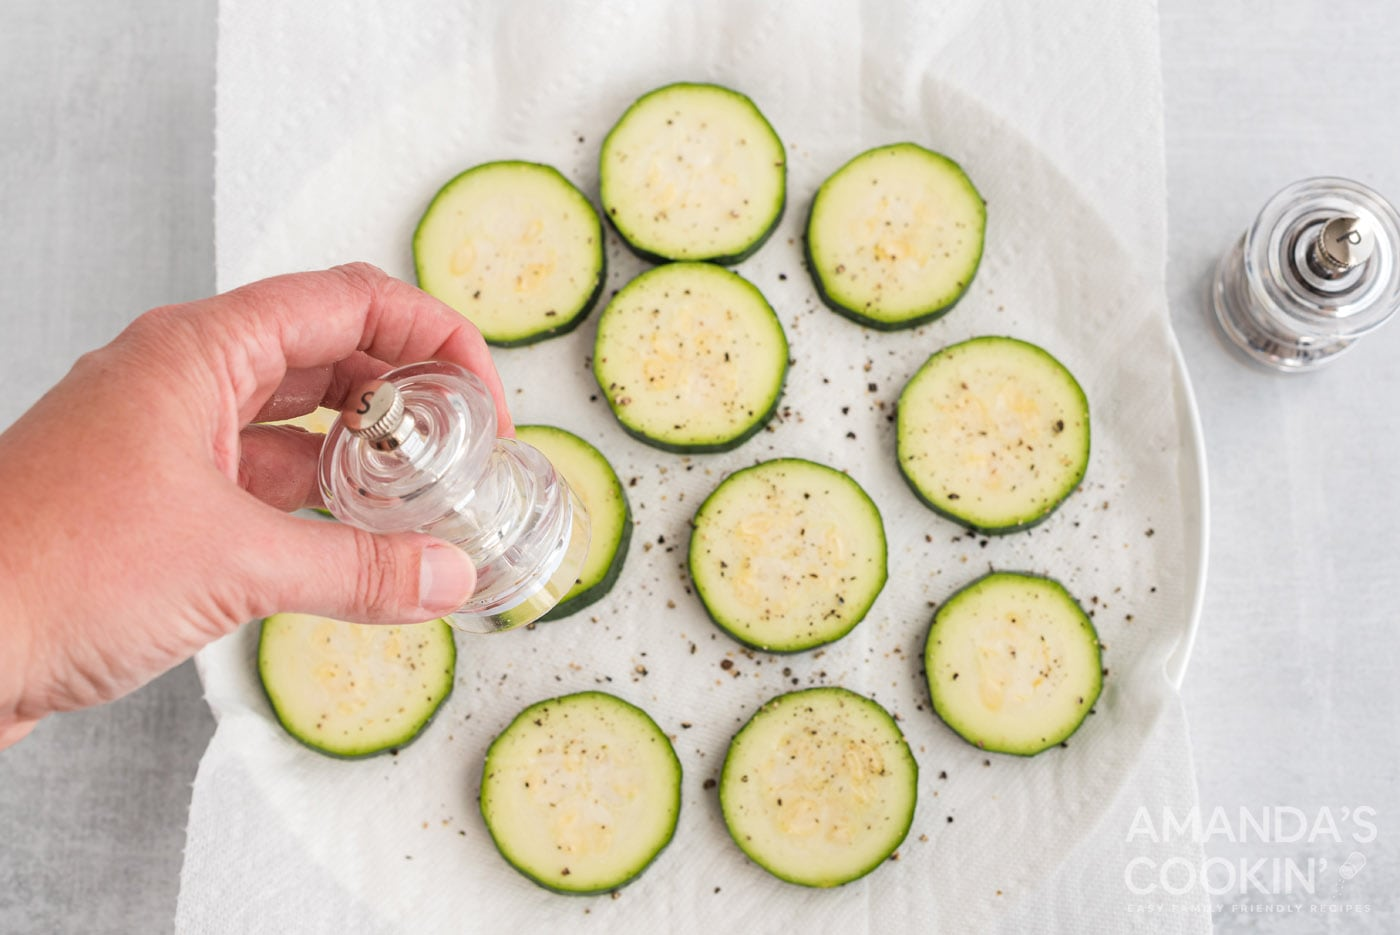 seasoning zucchini rounds with salt and pepper